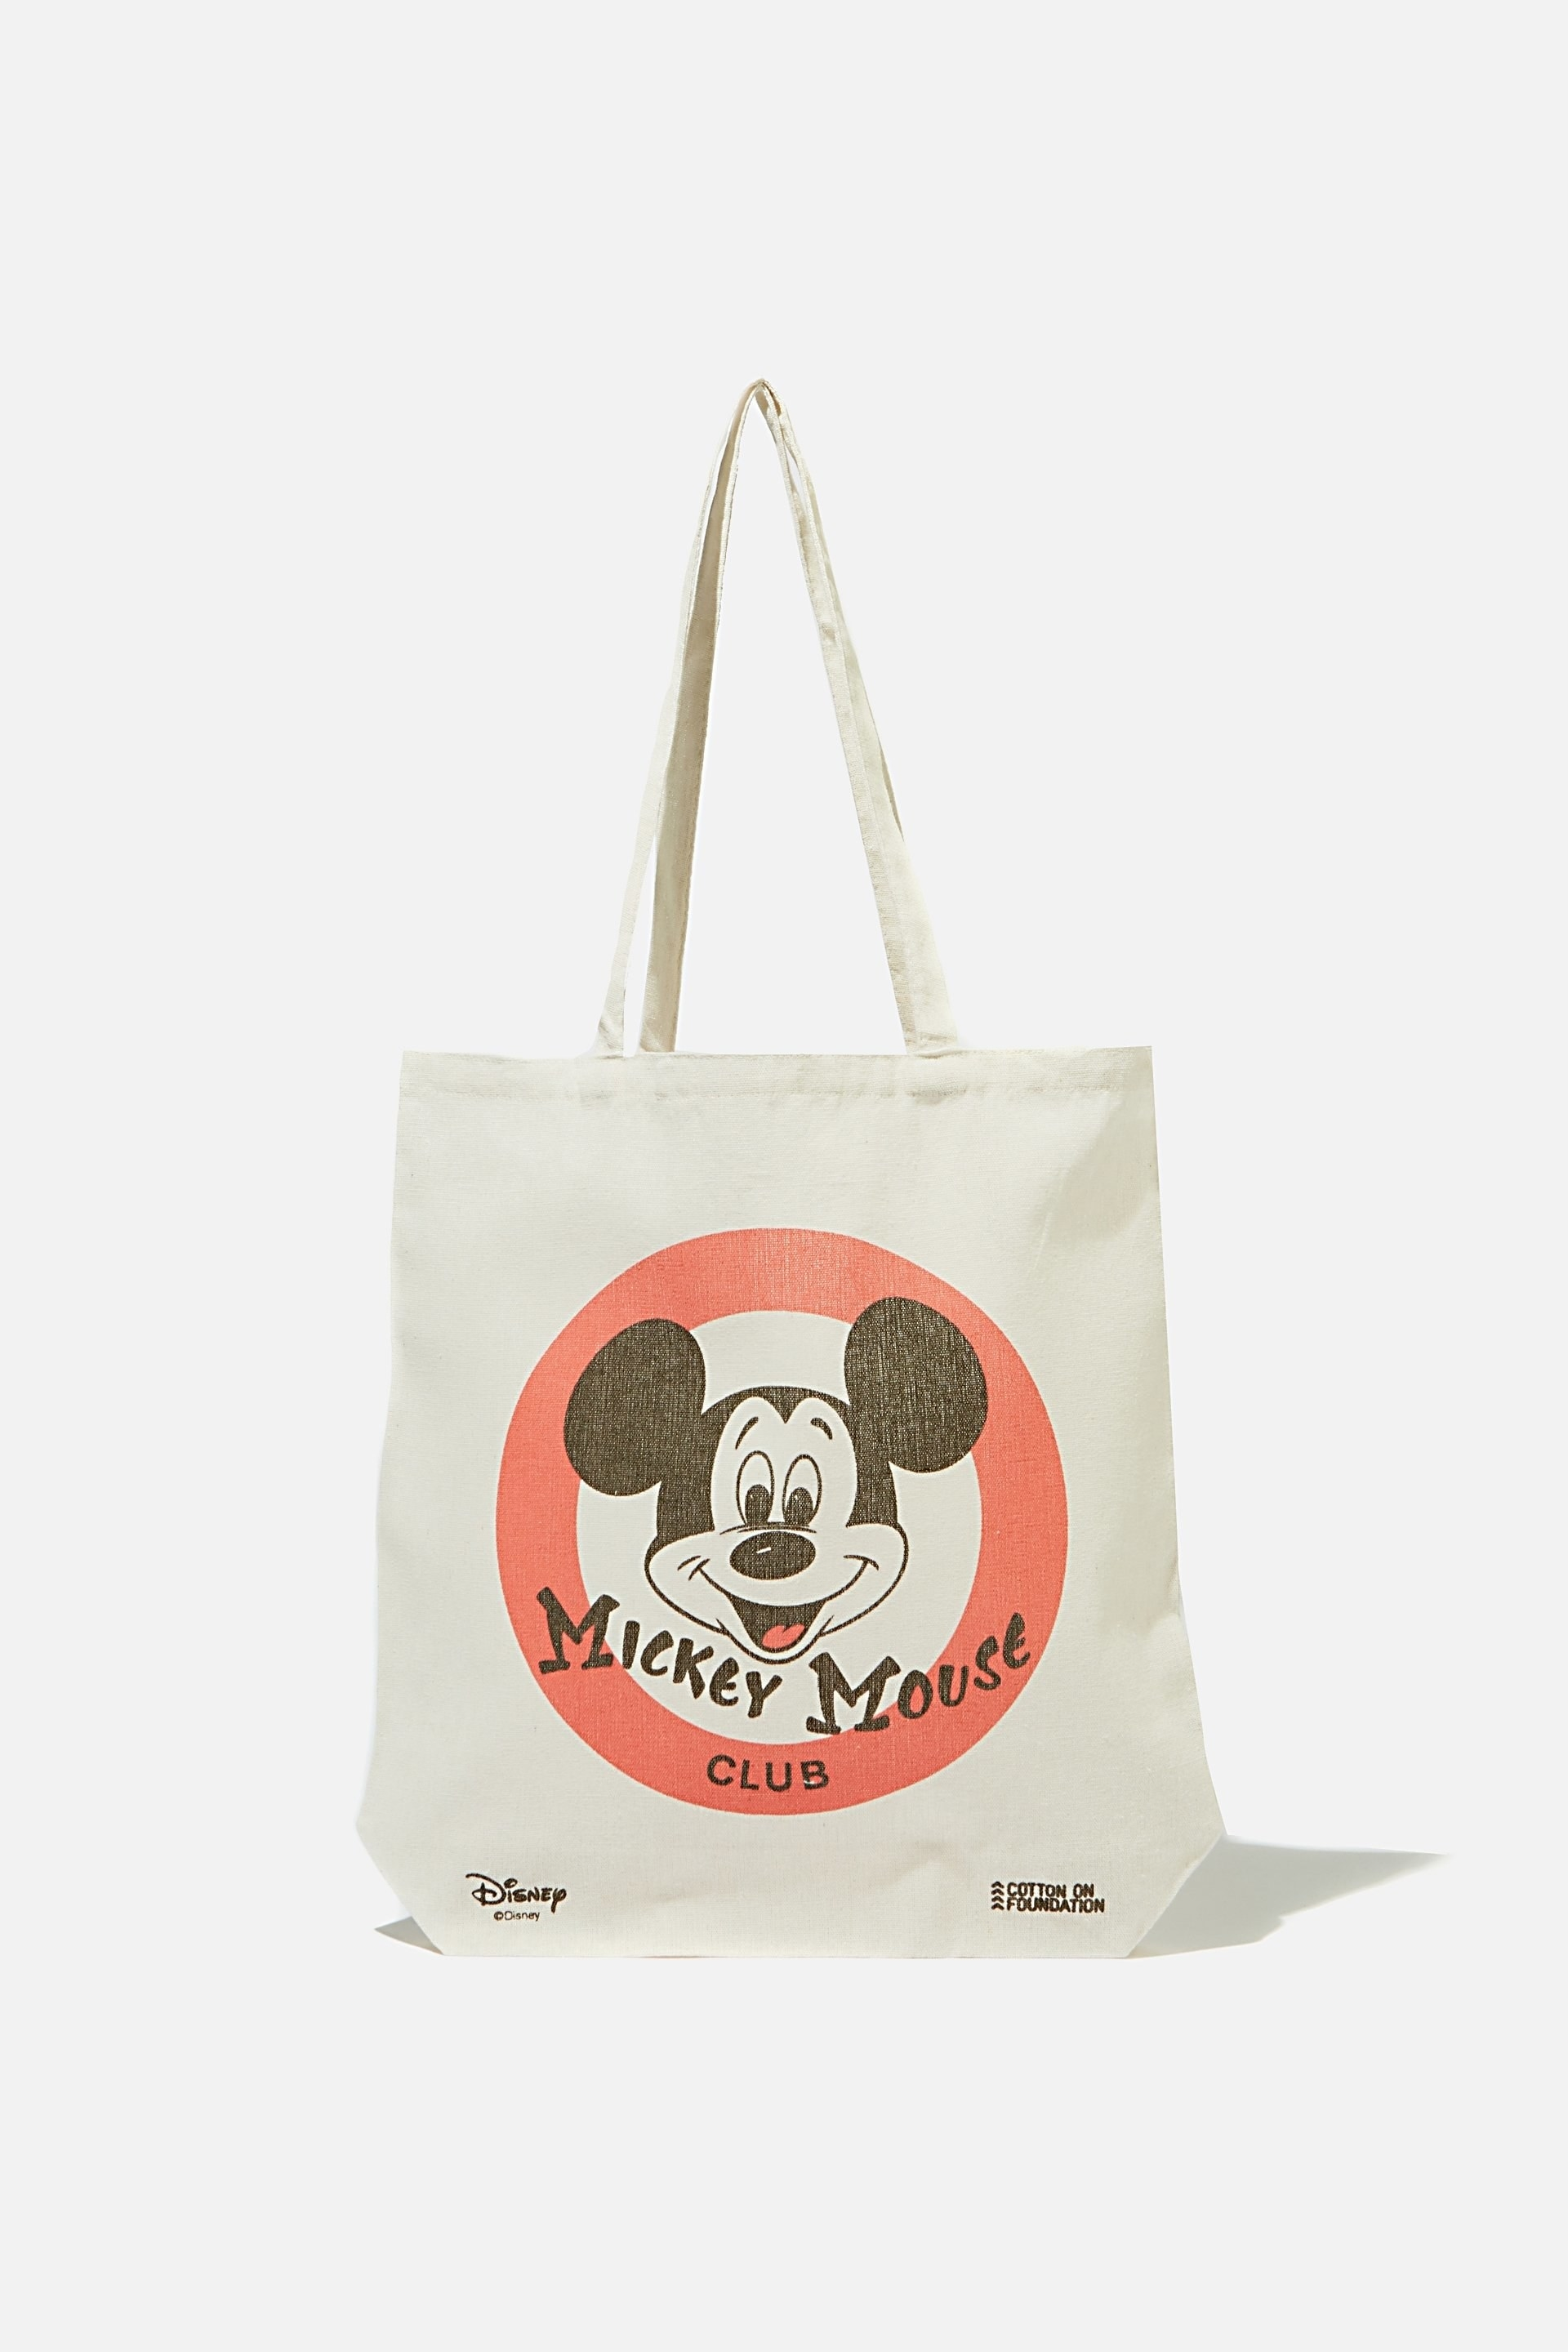 mickey mouse club tote